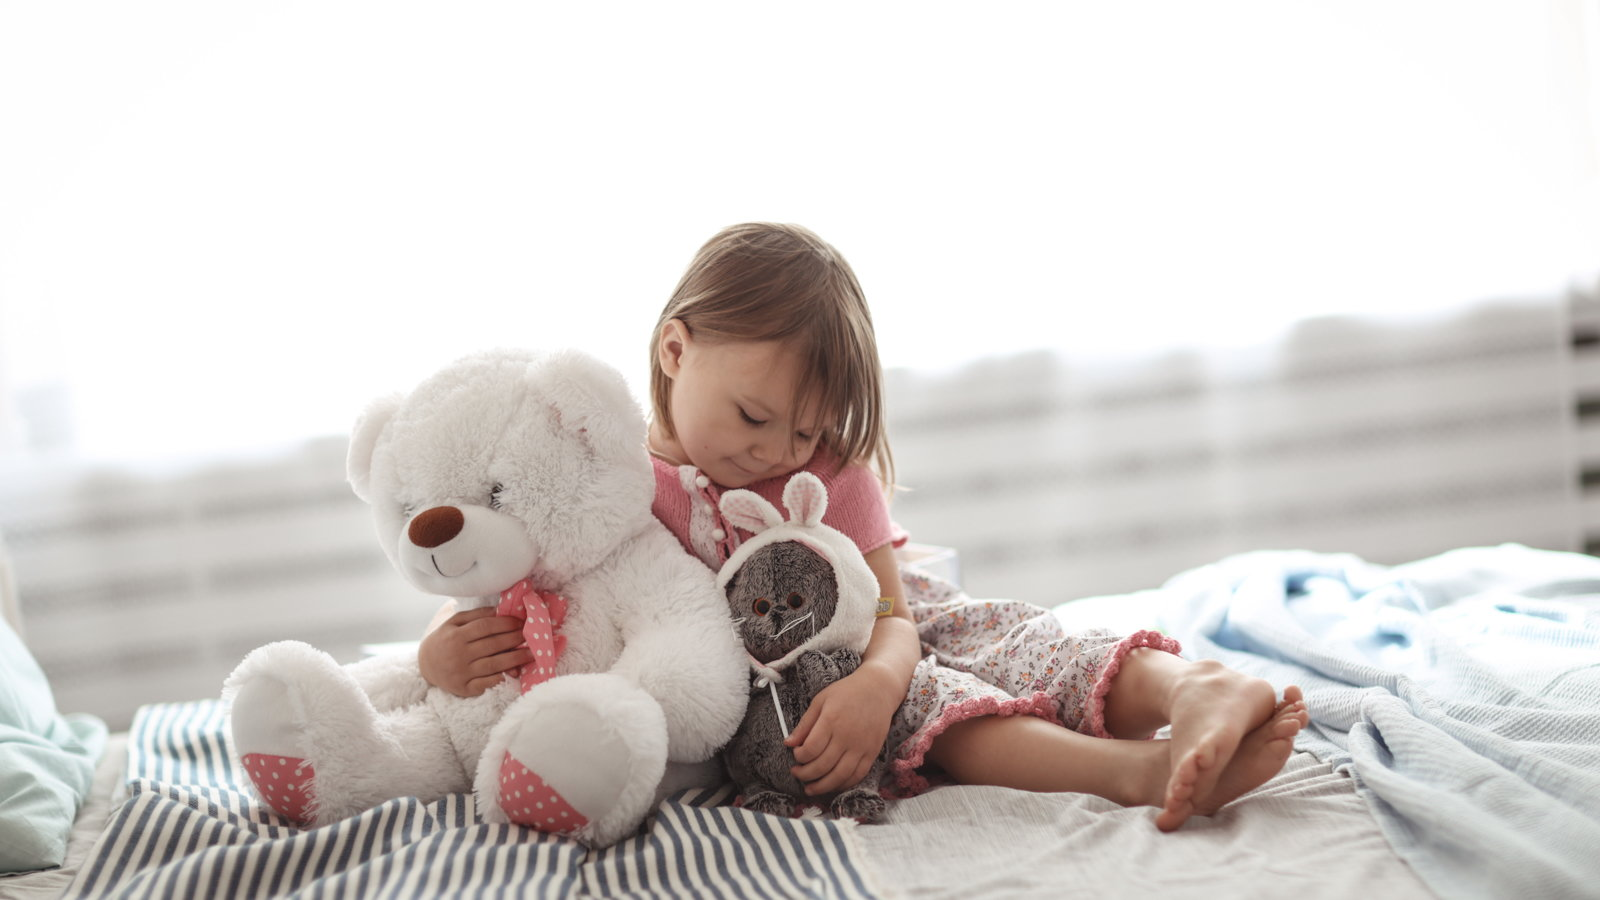 little girl in bed holding stuffed animals